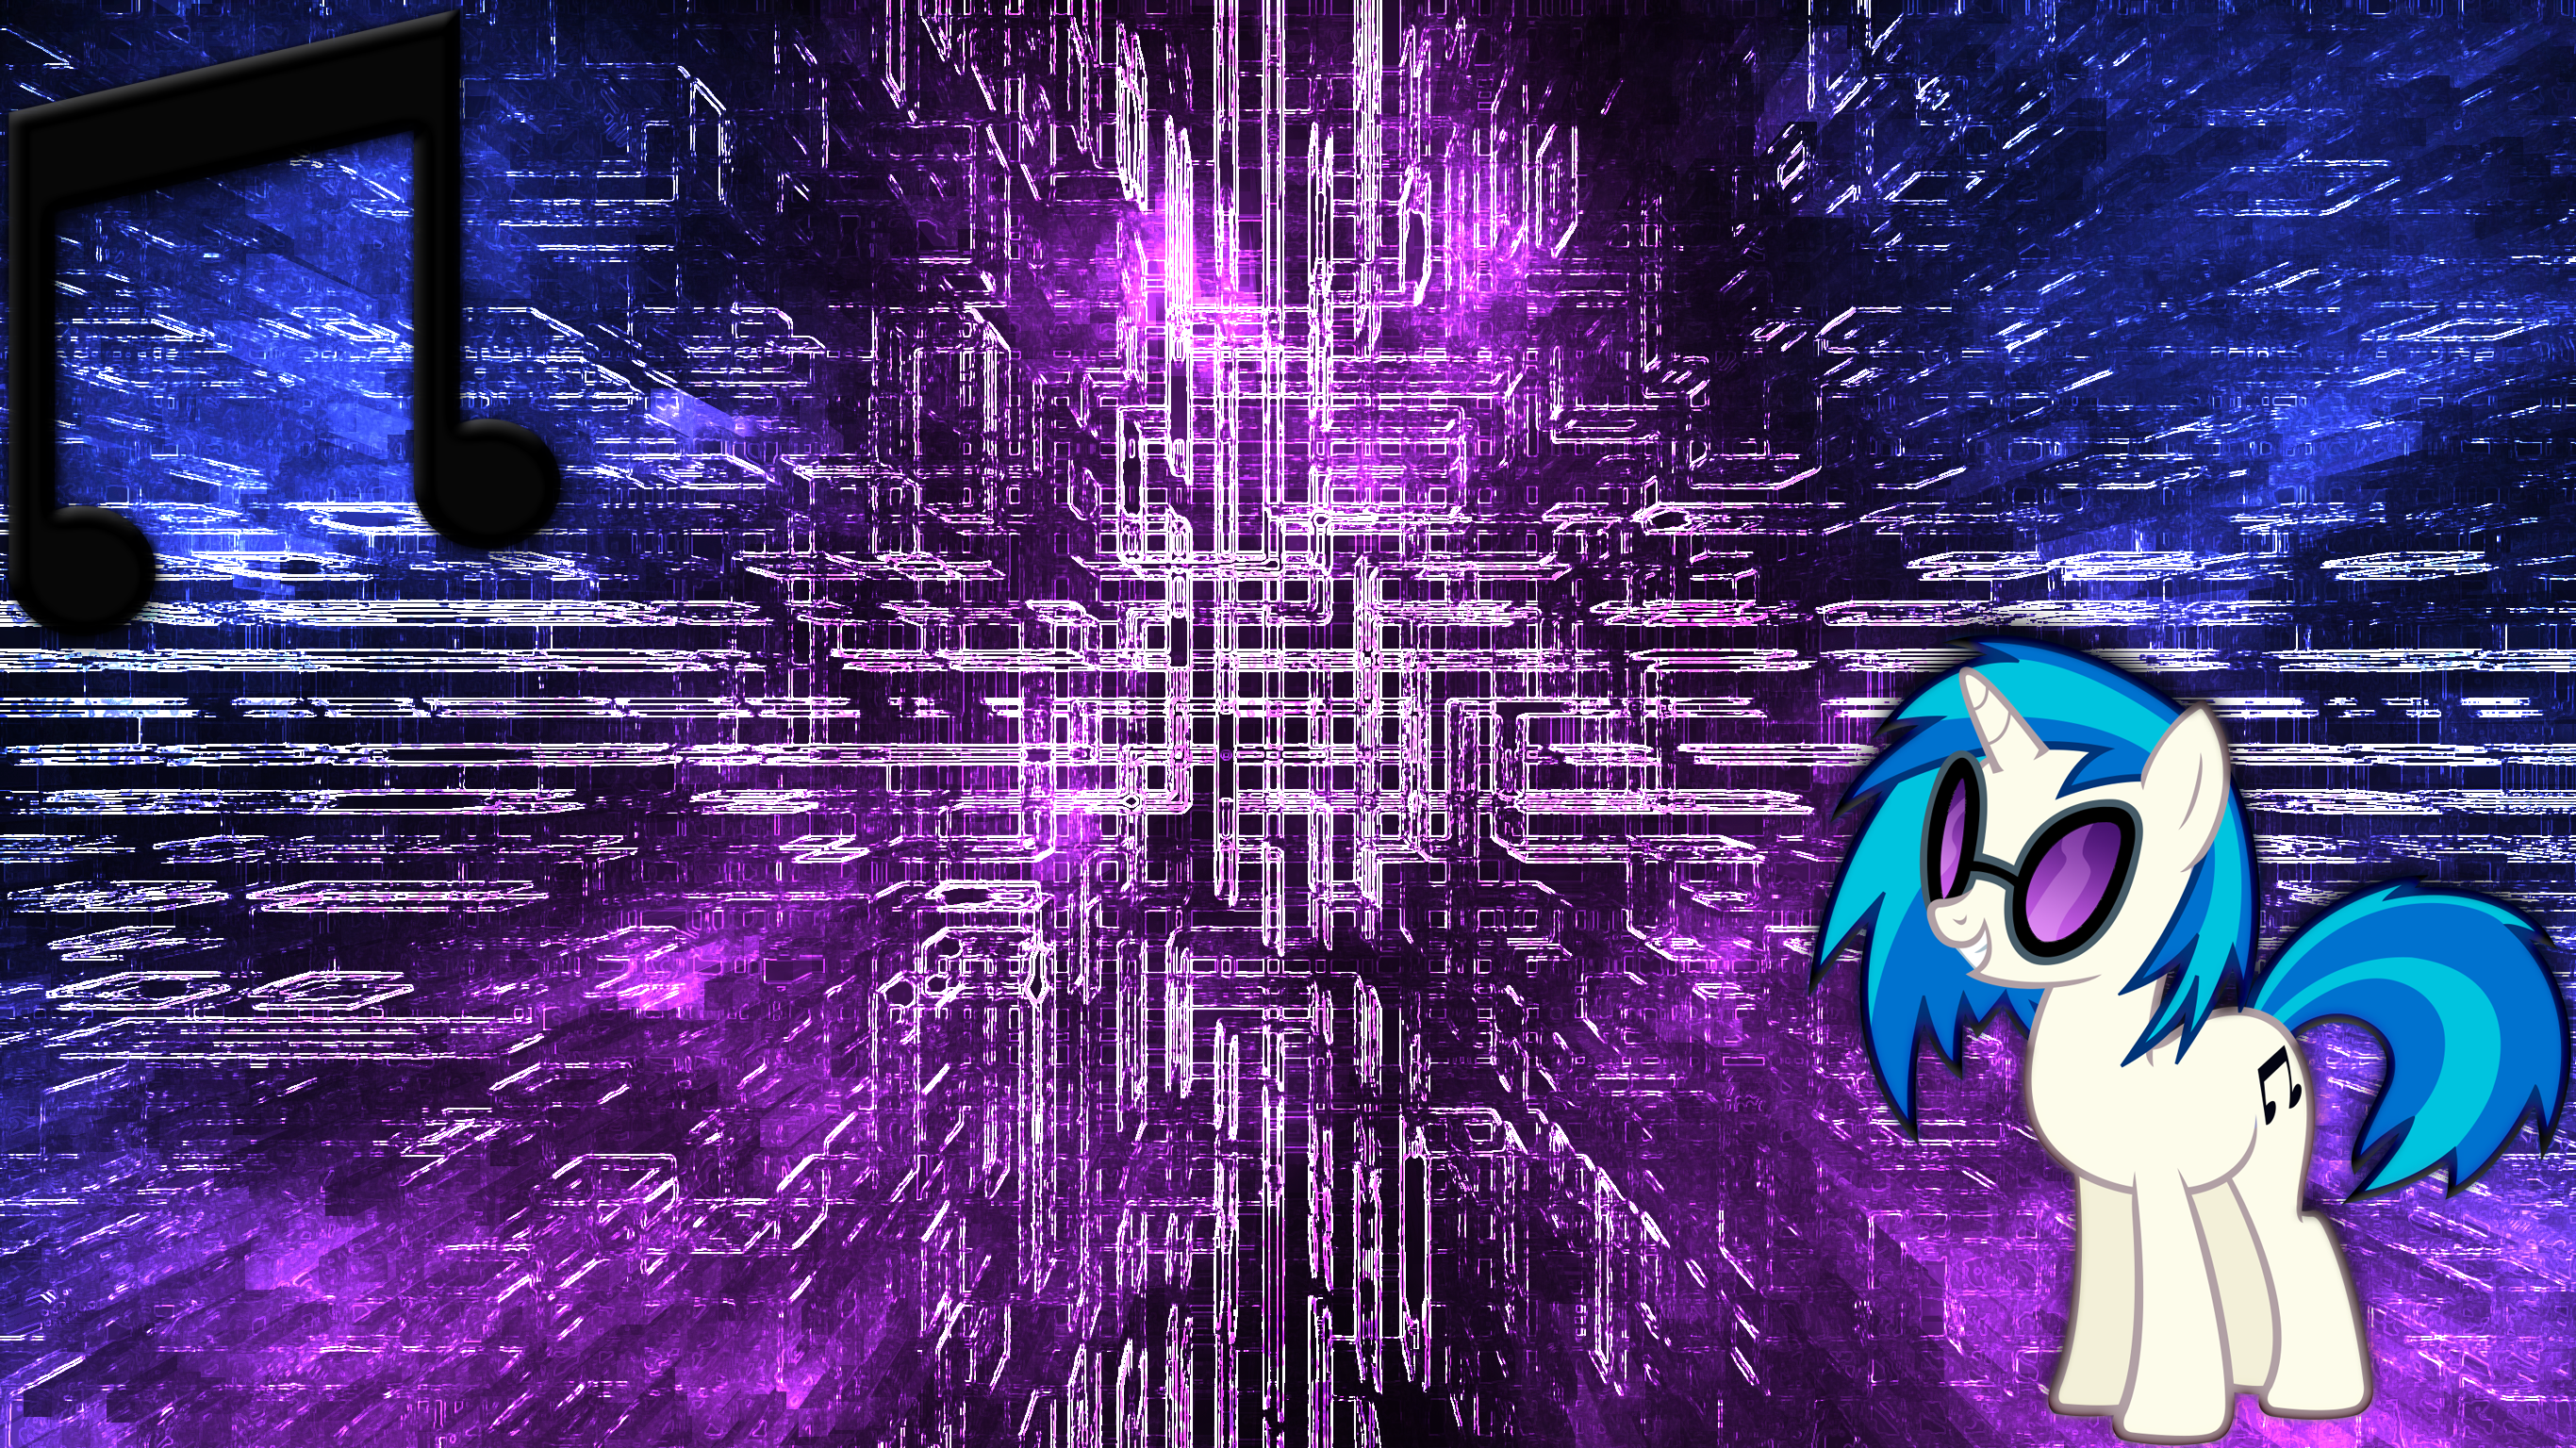 Vinyl Scratch Wallpaper 6 by JamesG2498